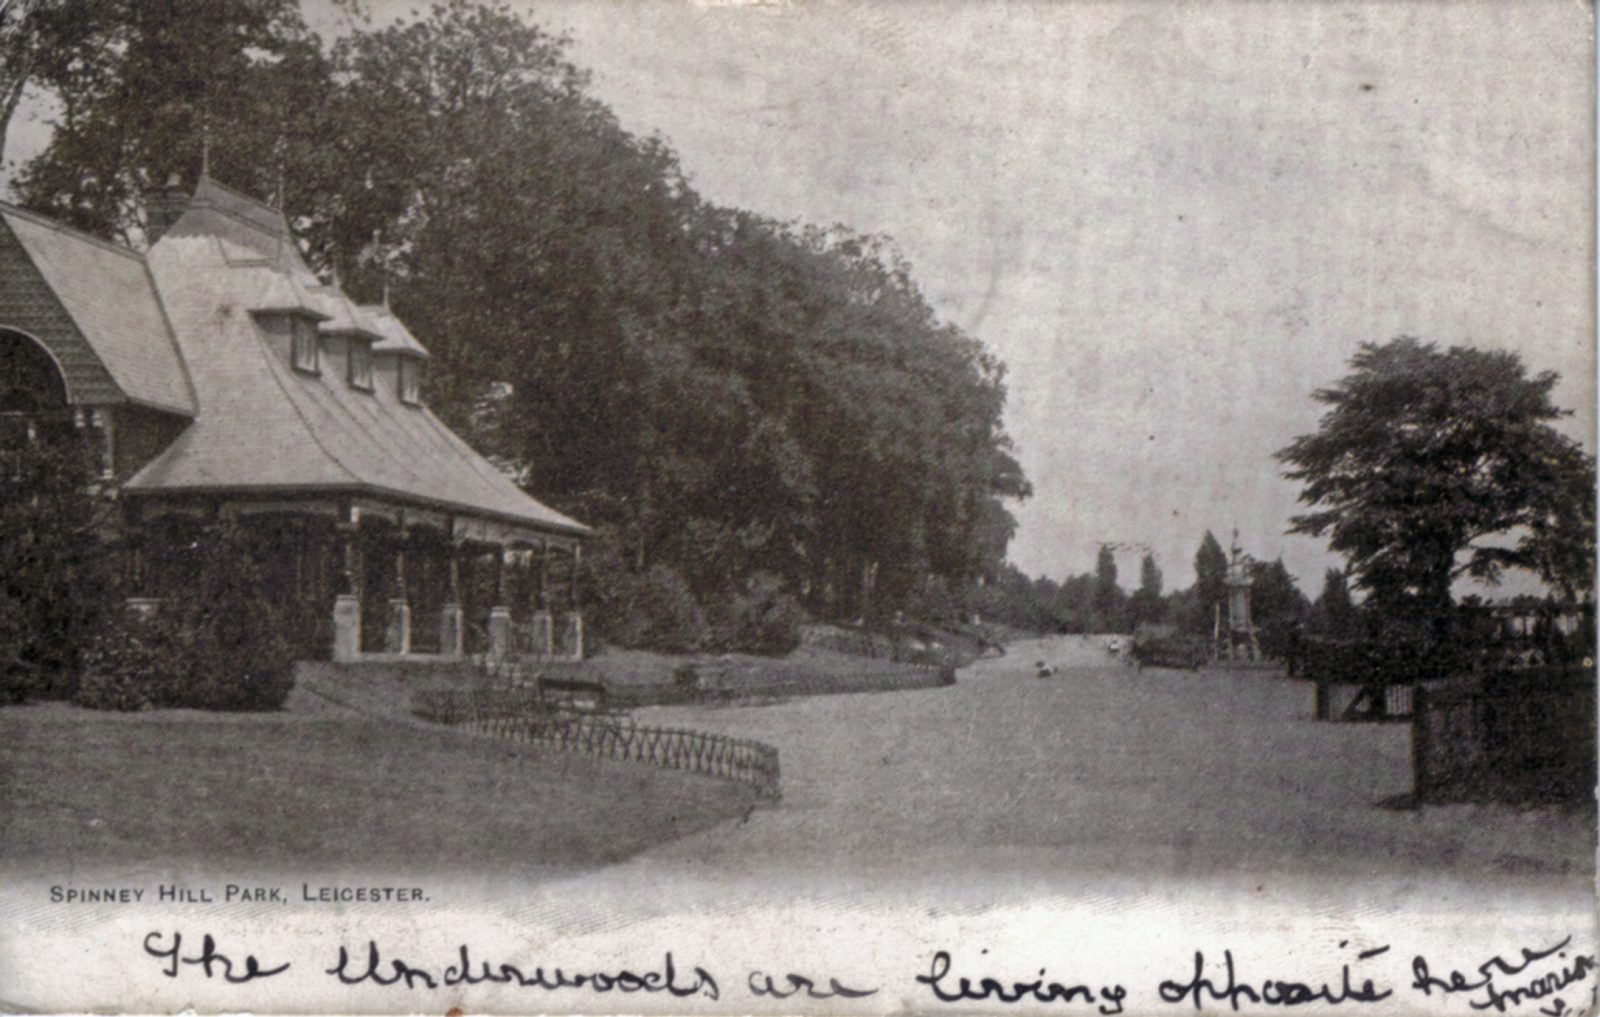 Spinney Hill Park, Leicester. Undated: The Pavilion and broad avenue. Franked 1903 (File:1059)